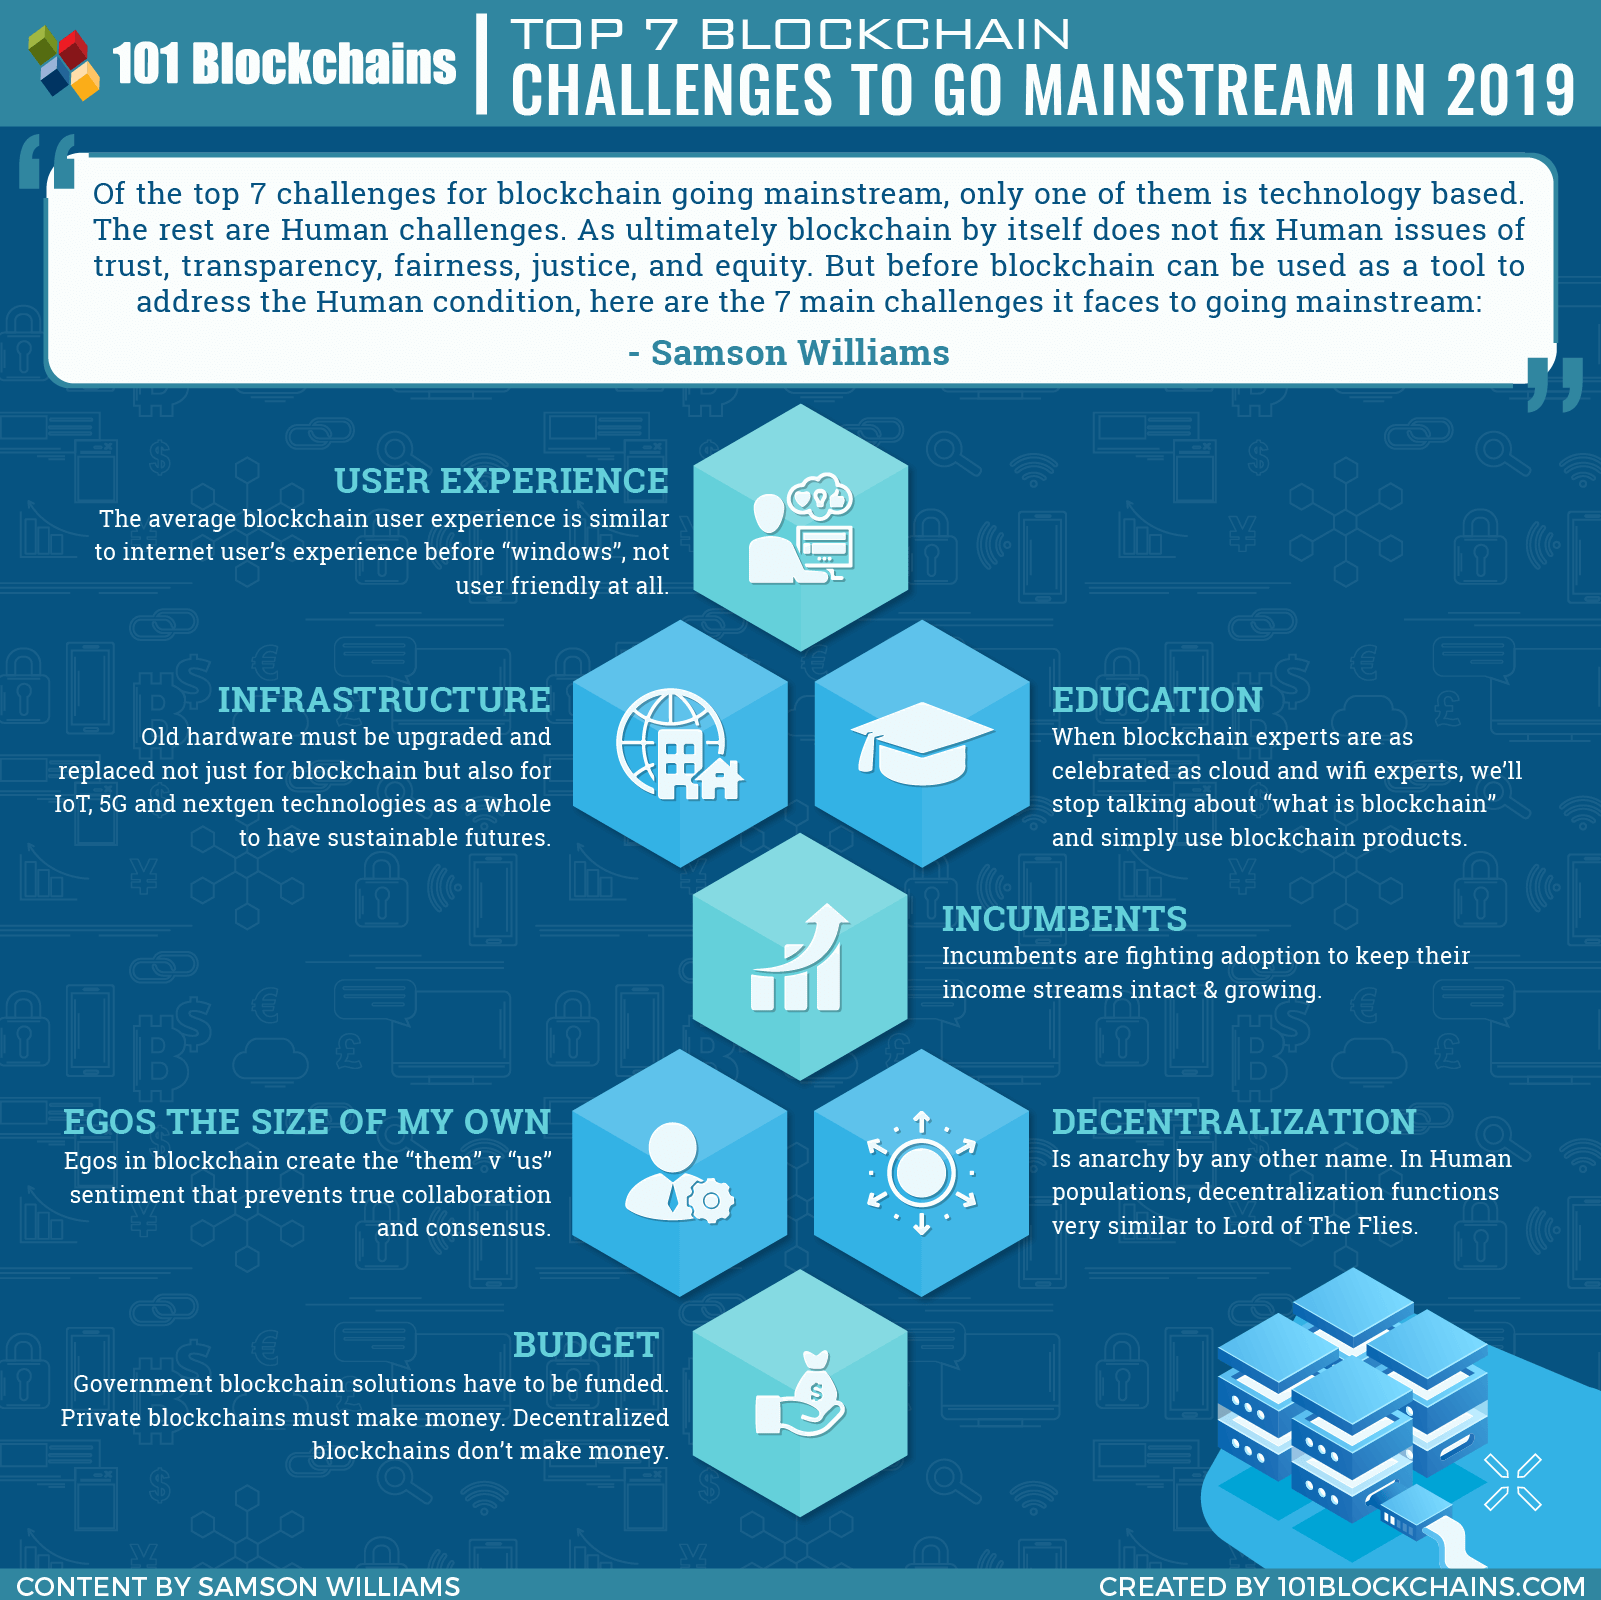 Top 7 Blockchain challenges